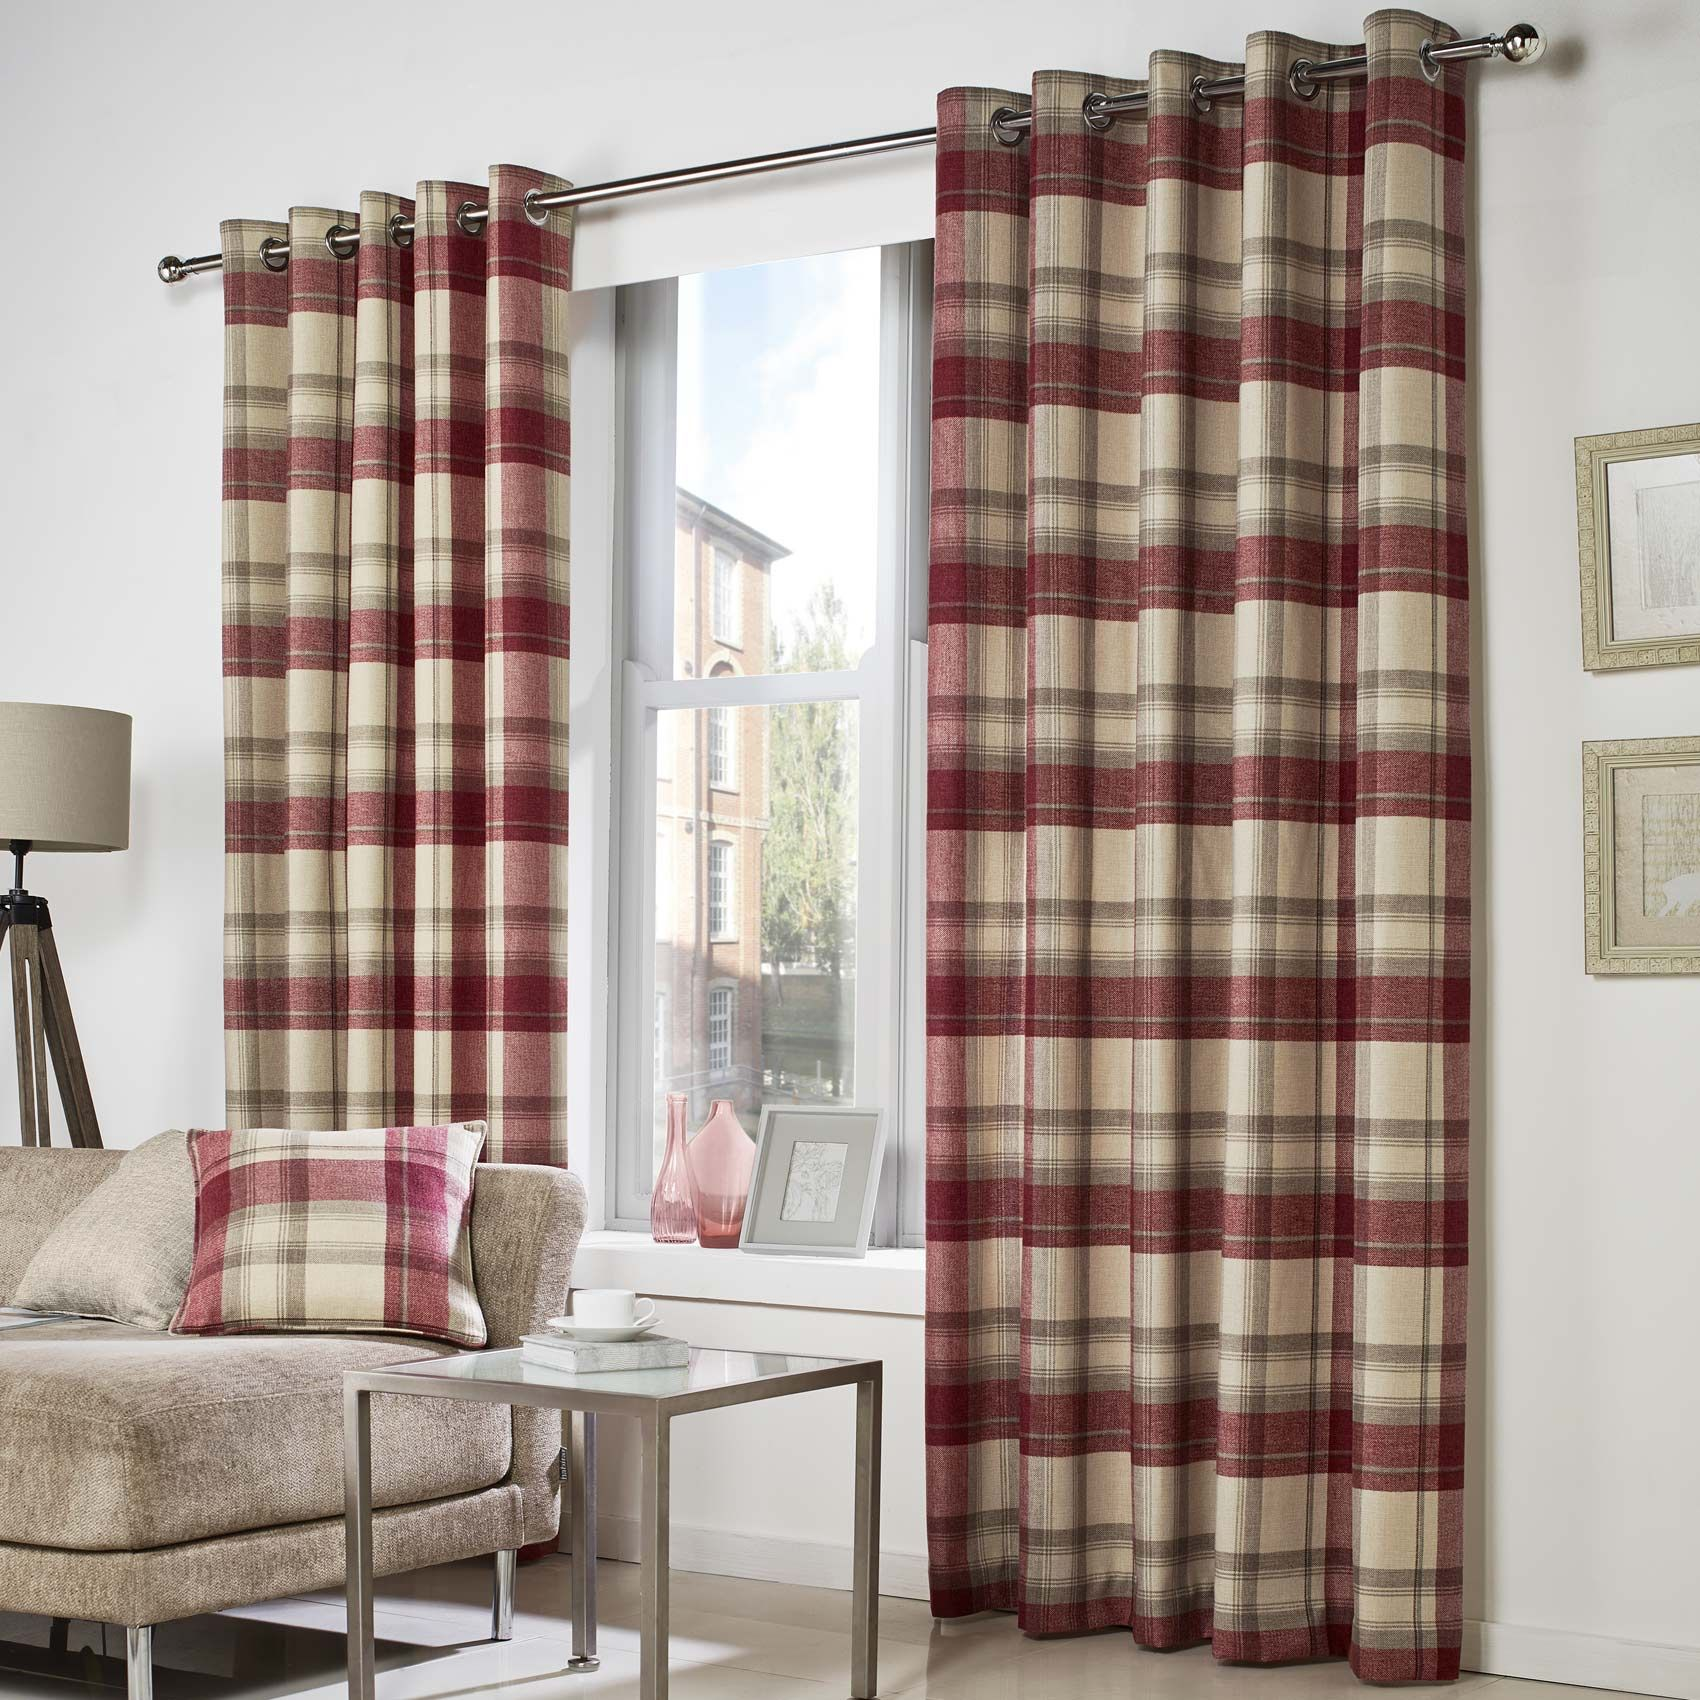 Red plaid curtains - Curtina Belvedere Check Eyelet Readymade Curtains Red Soft Furnishings Emporium Home Interiors